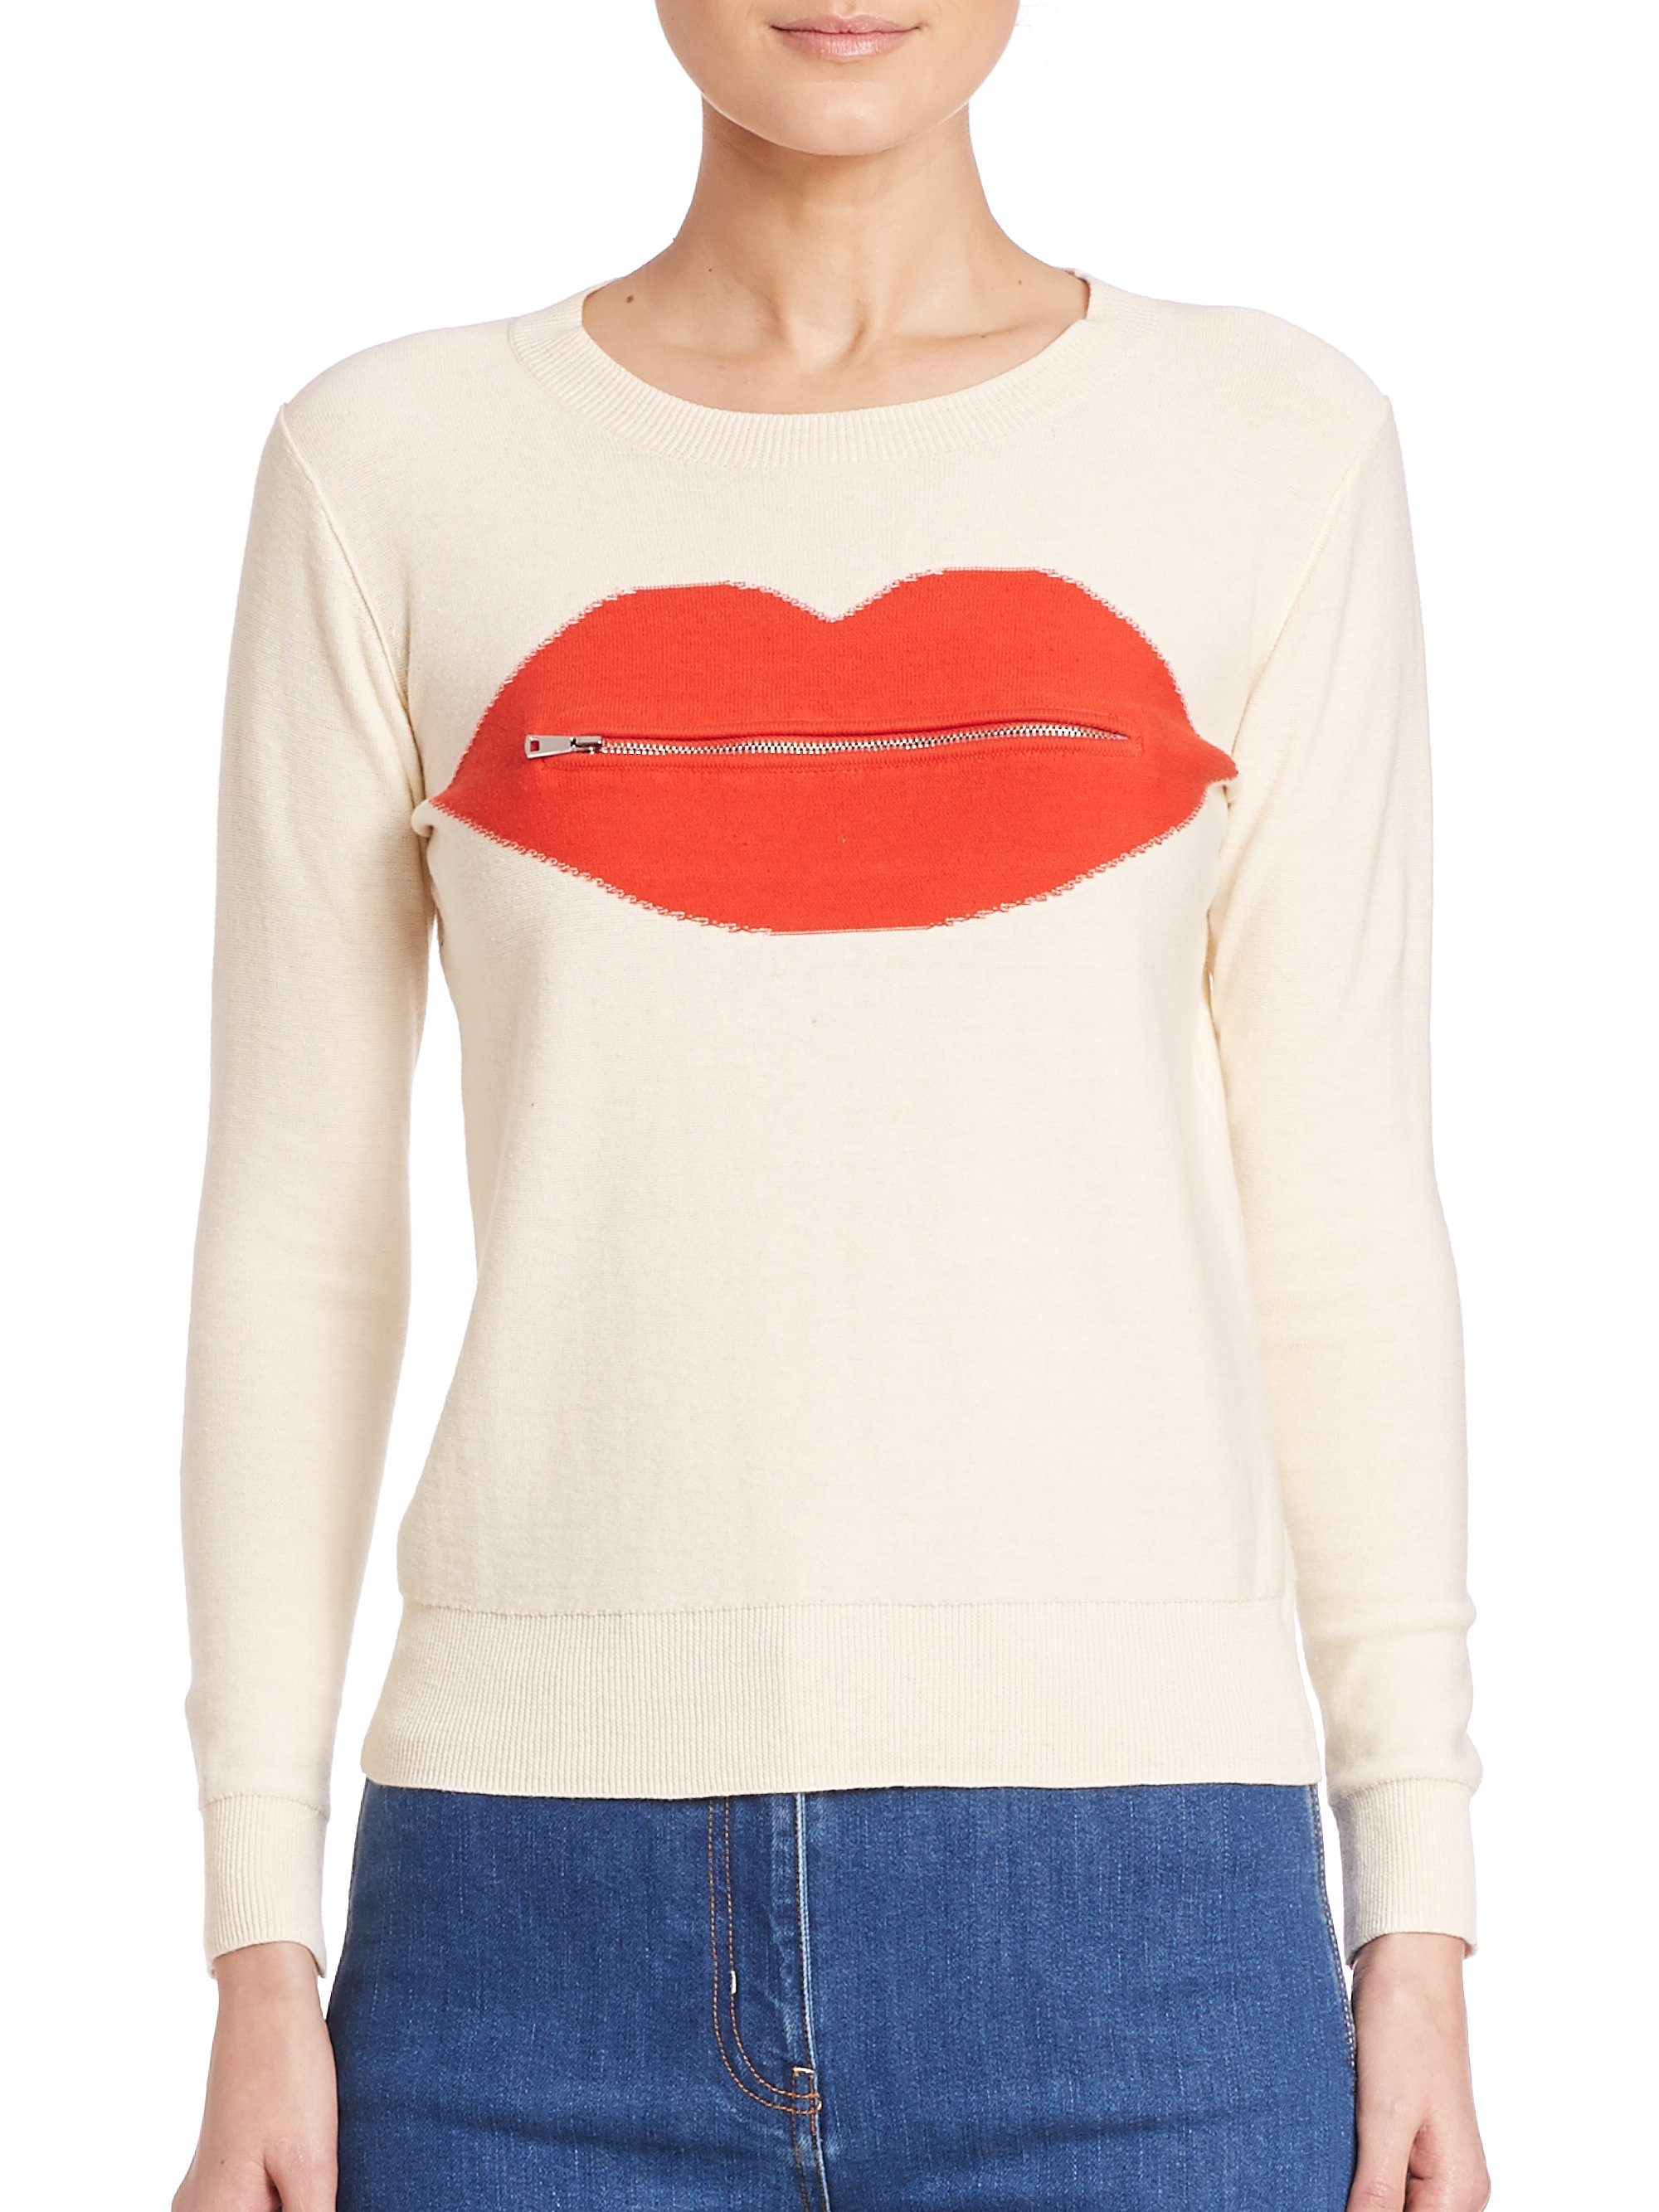 a714878de4be Sonia by Sonia Rykiel Intarsia Zippered Lip Sweater in Red - Lyst